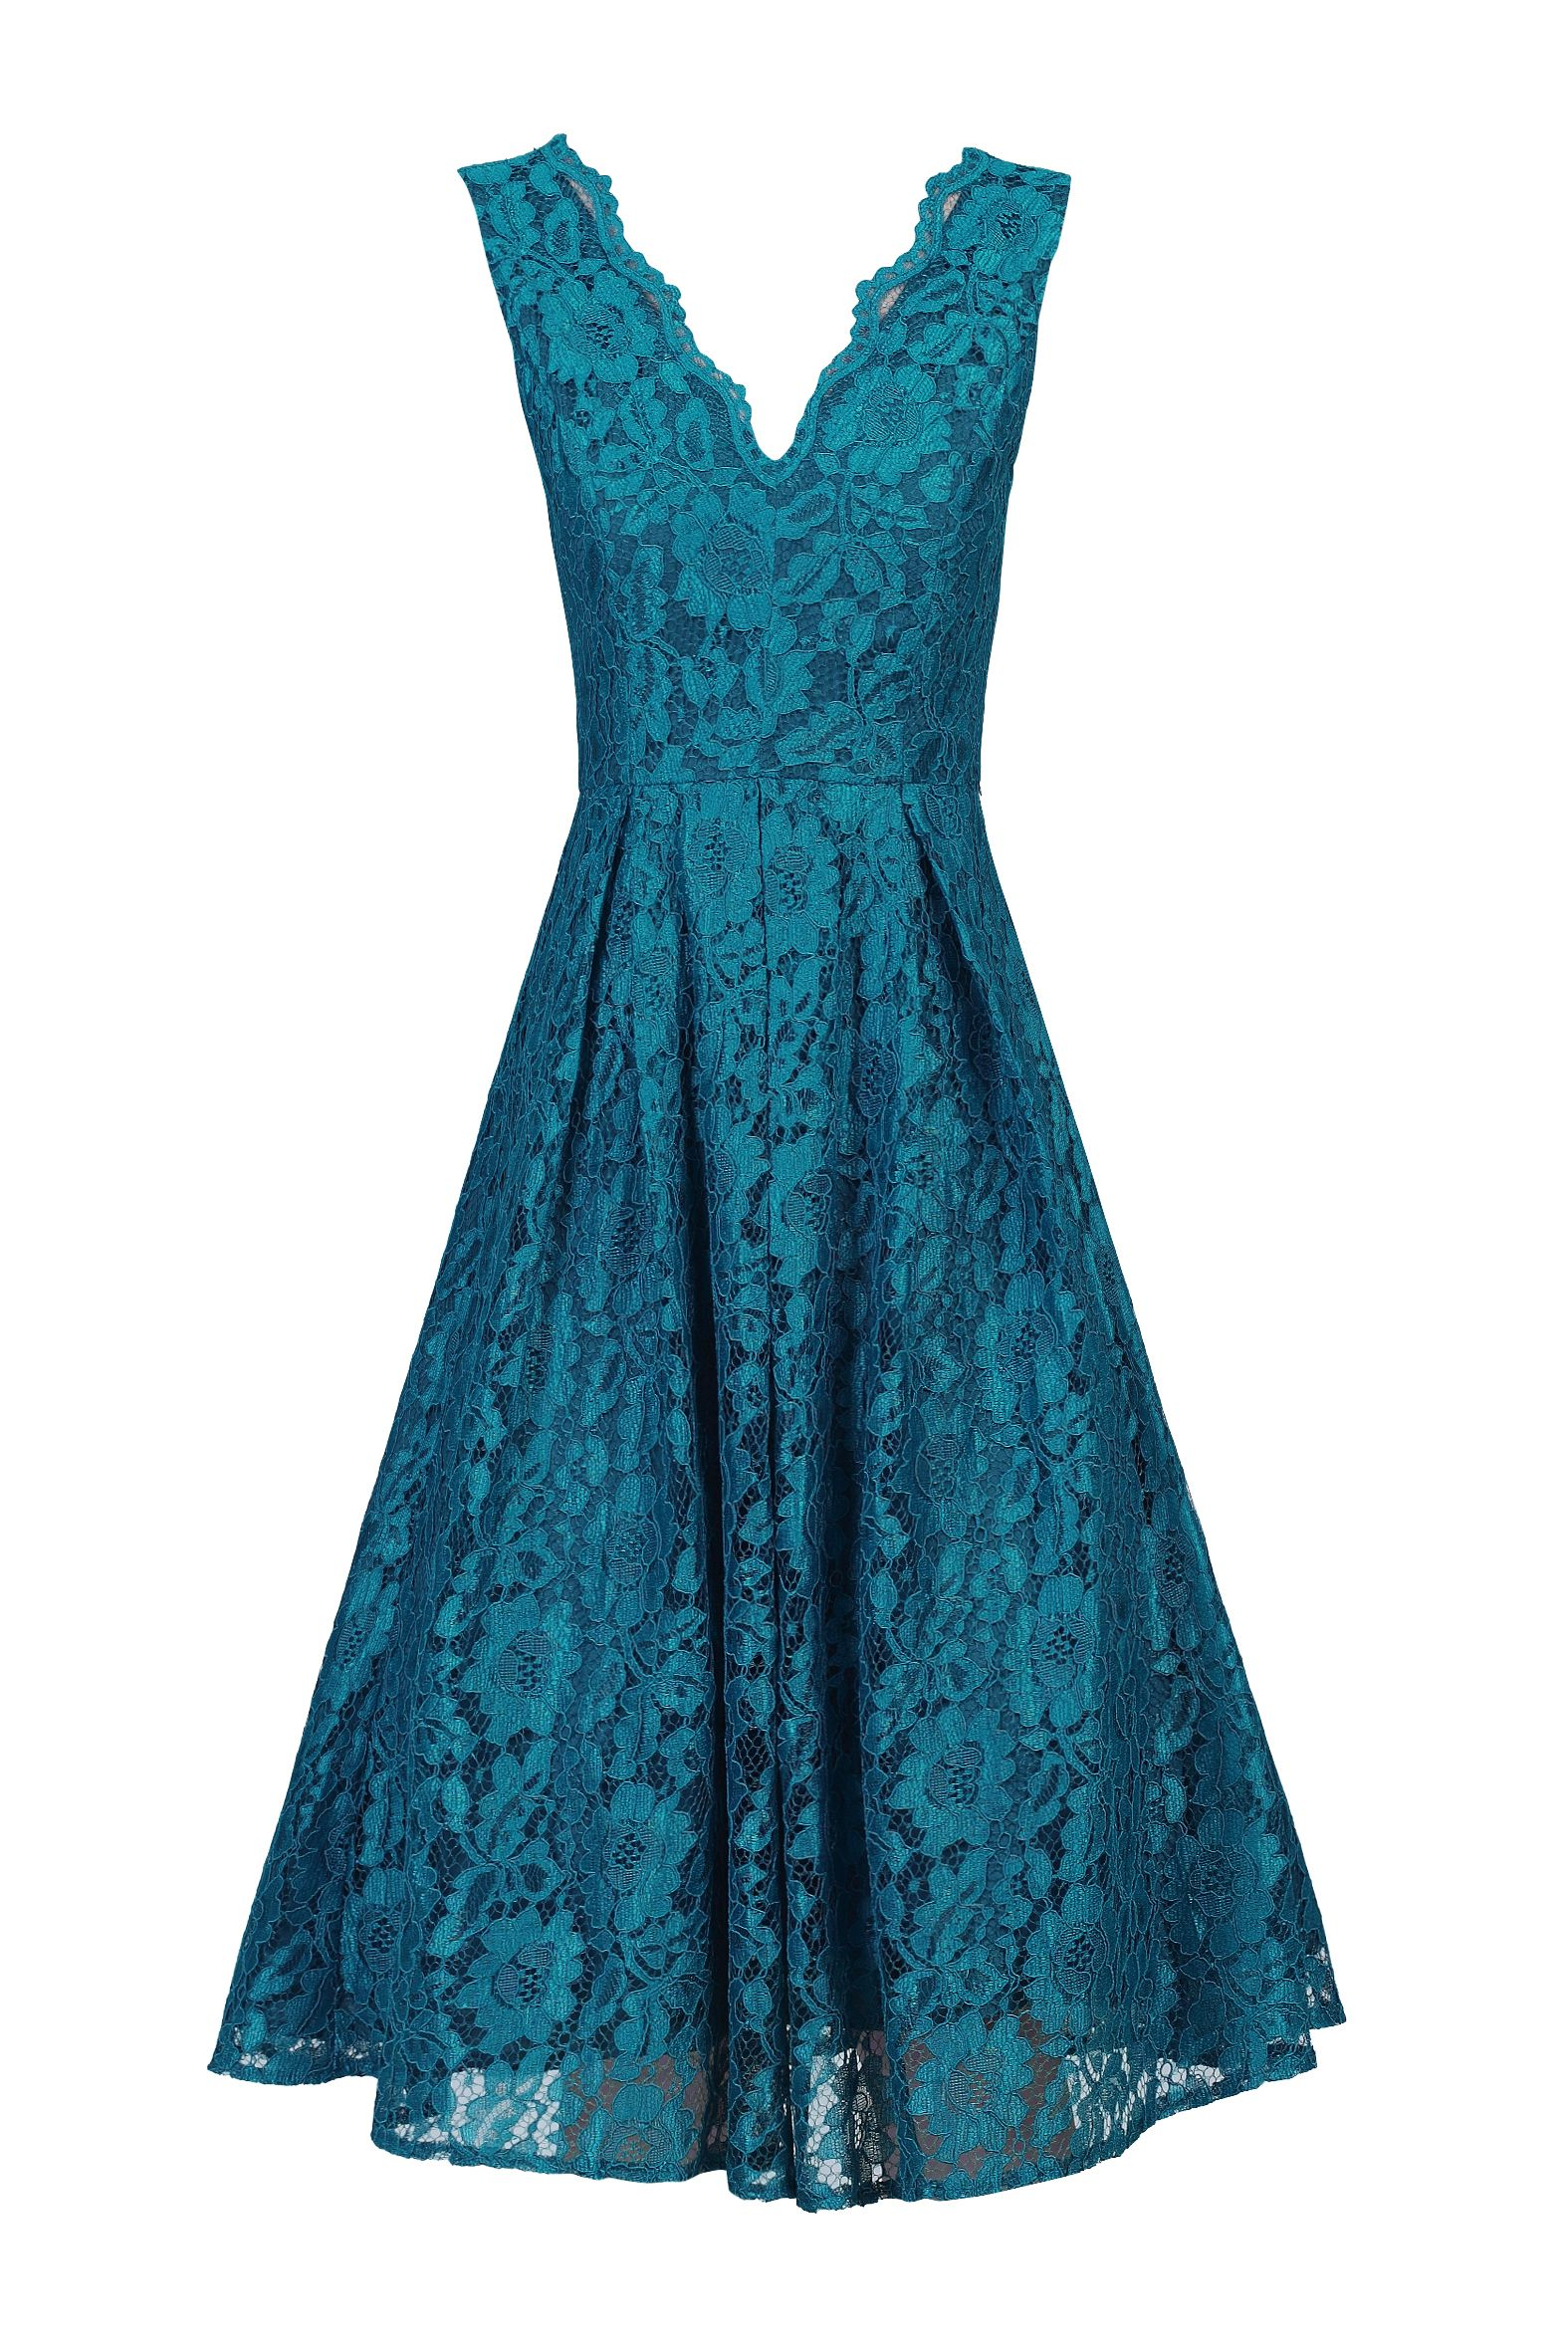 Jolie Moi Scalloped V Neck Lace Prom Dress, Blue